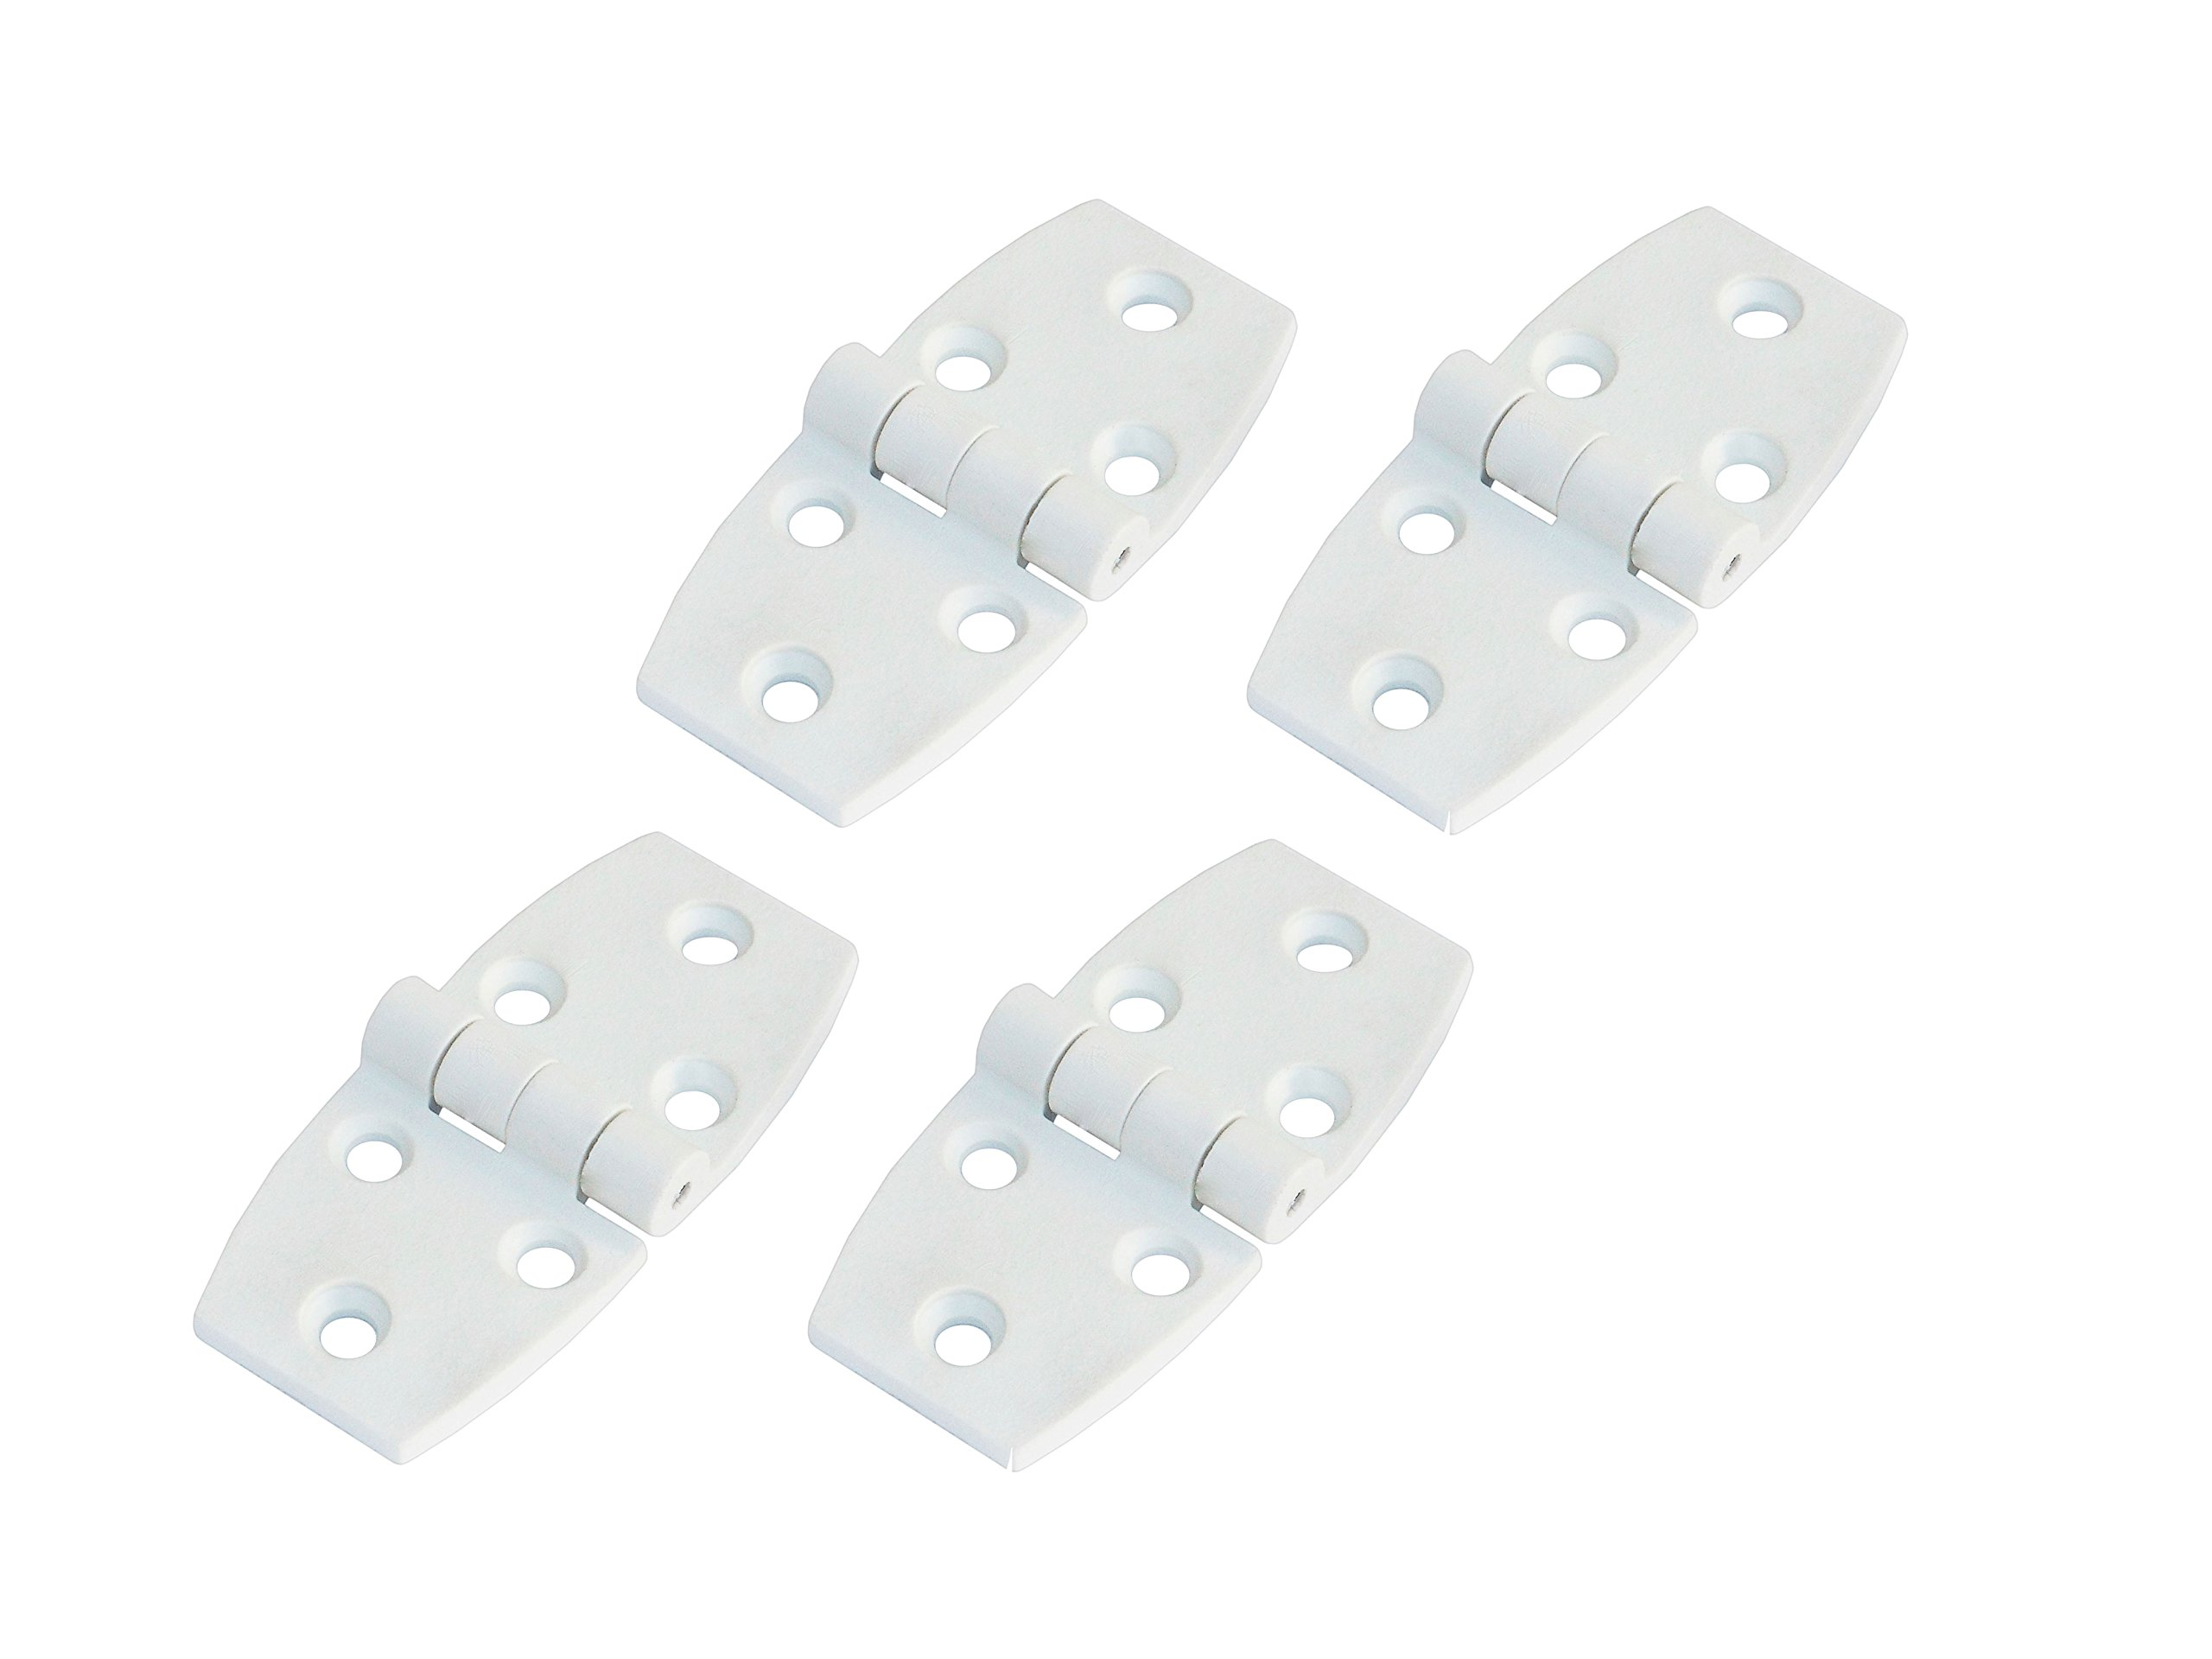 Five Oceans Plastic Door Hinge, White (Set of 4) FO-79-M4